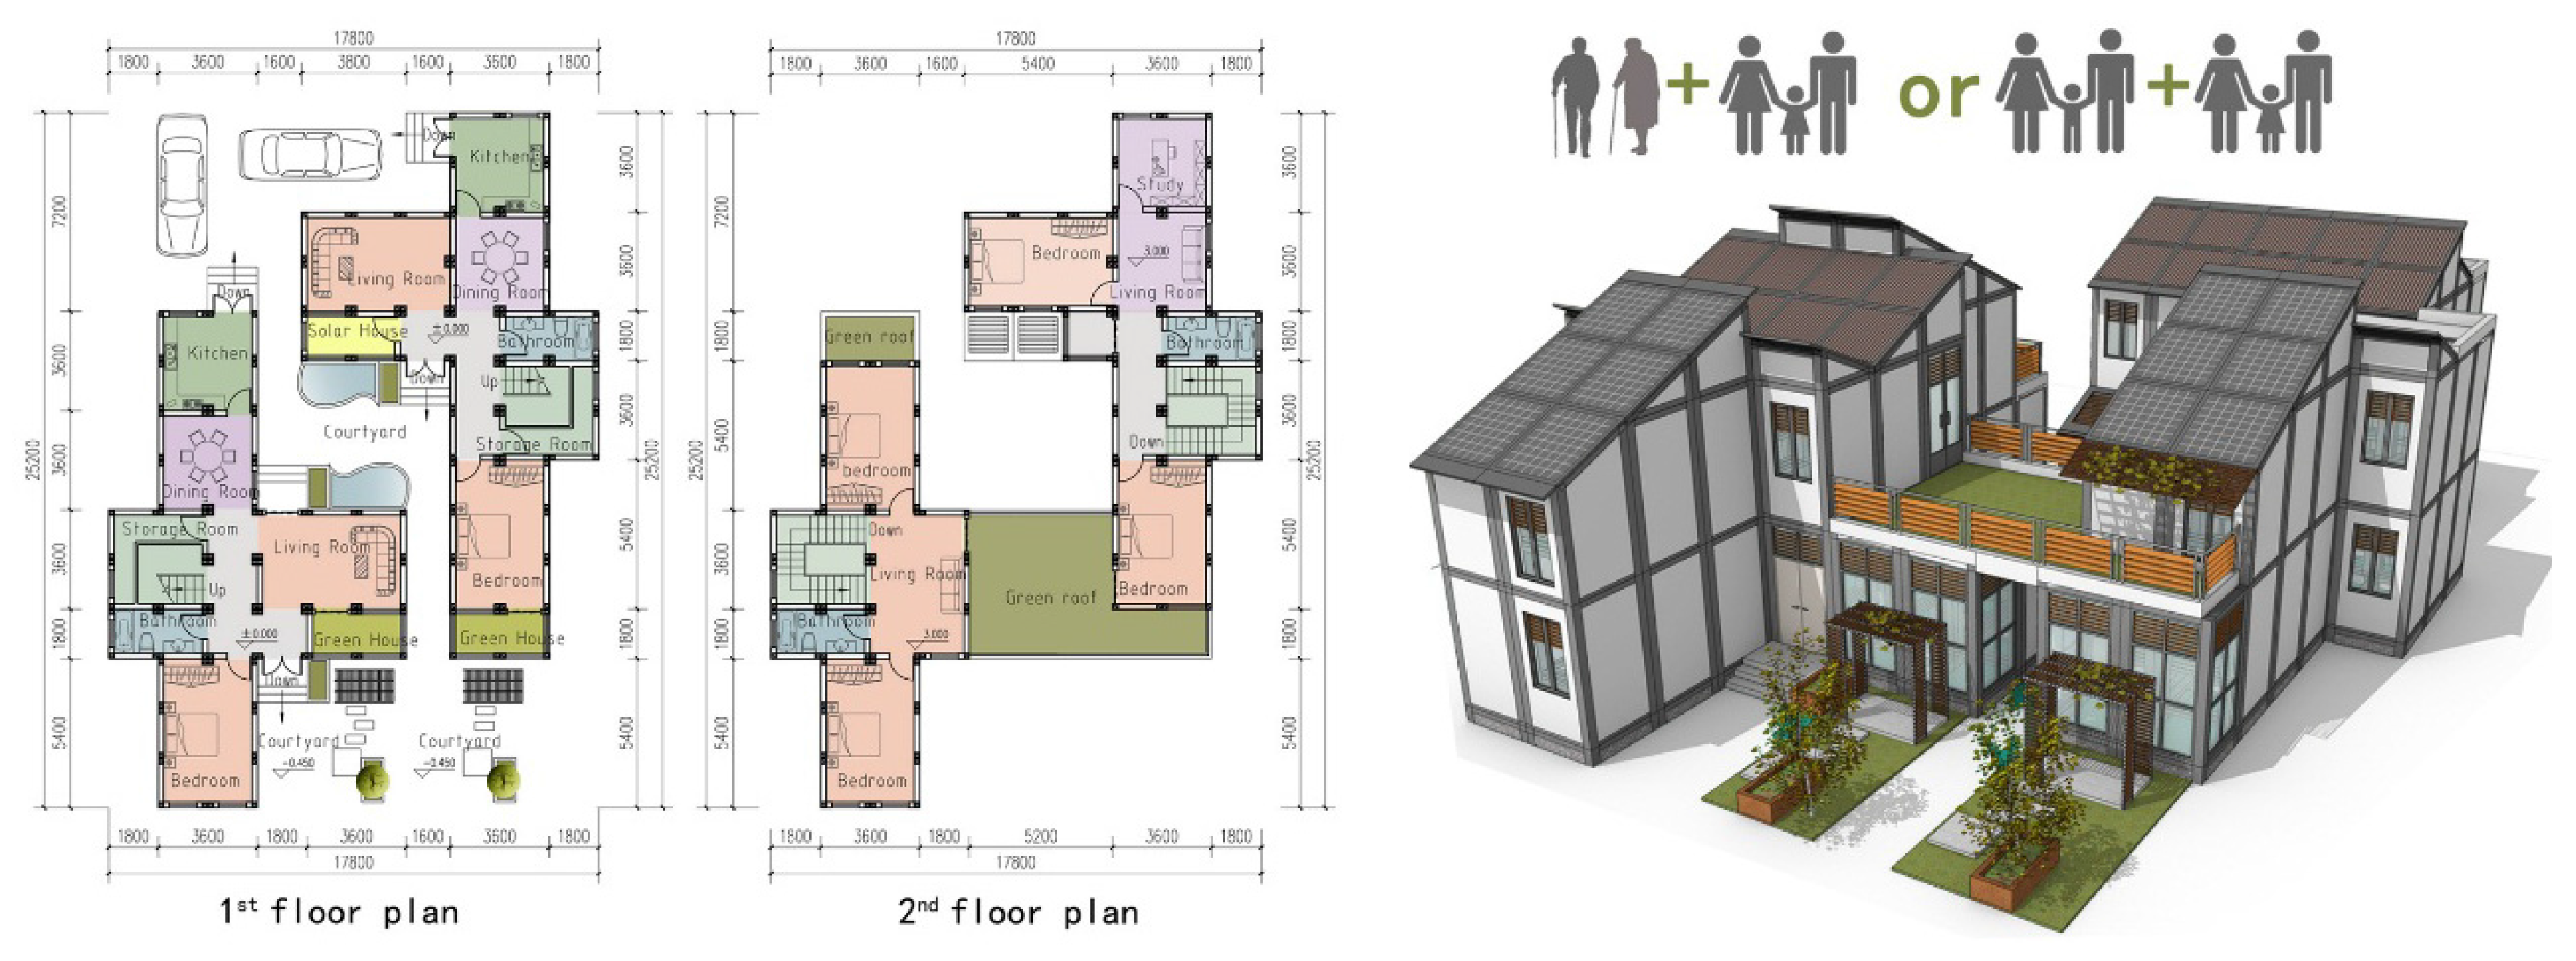 Sustainability | Free Full-Text | Solar Energy Block-Based ... on house inside a china, homes in china, small apartment designs in china,